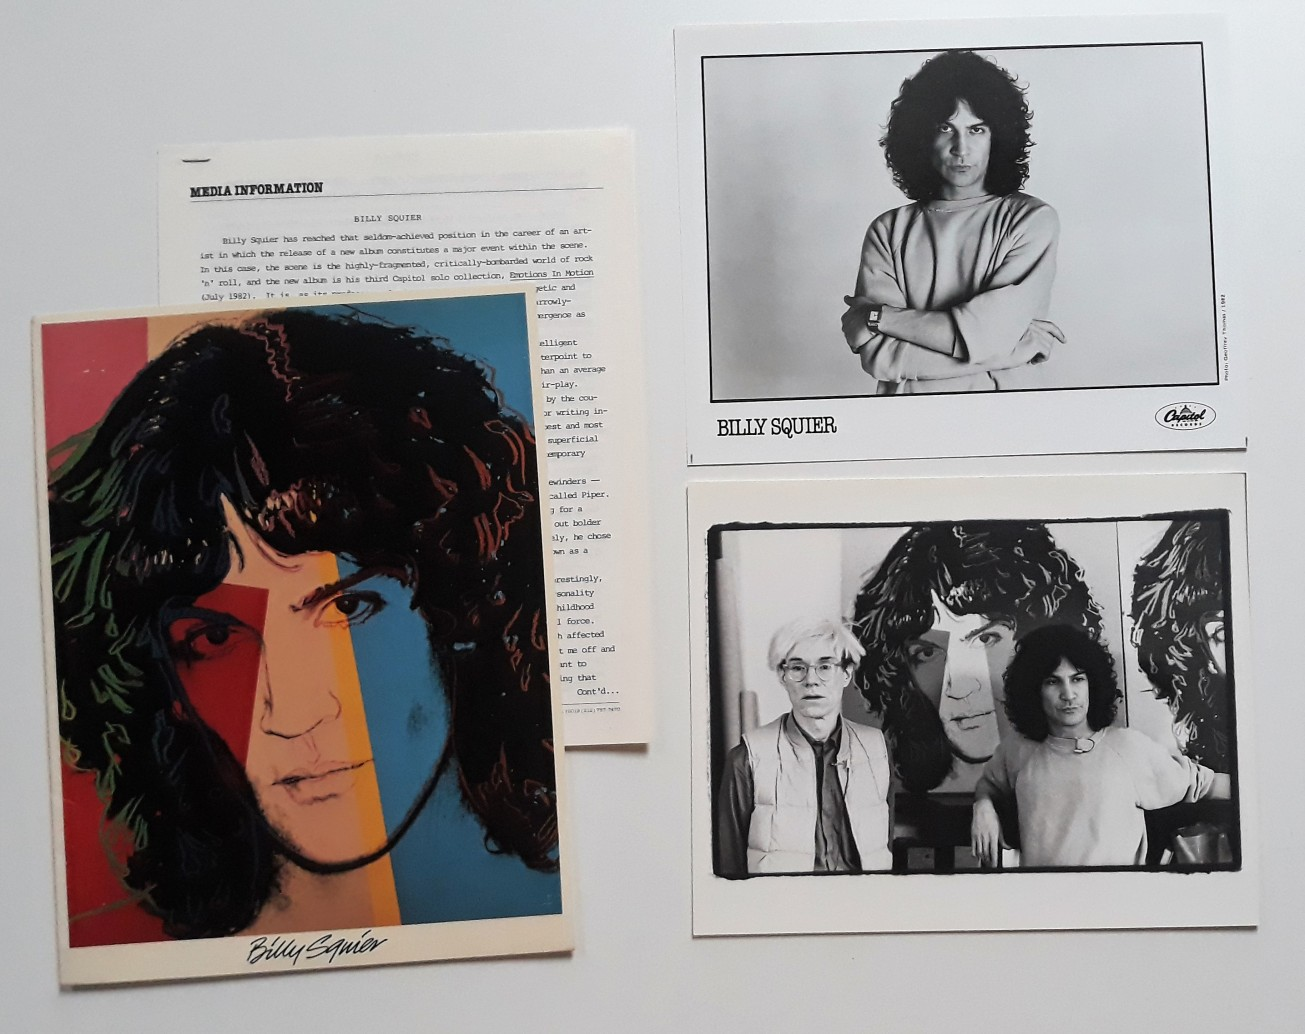 1982 Billy Squier 3 Emotions in Motion - Press folder